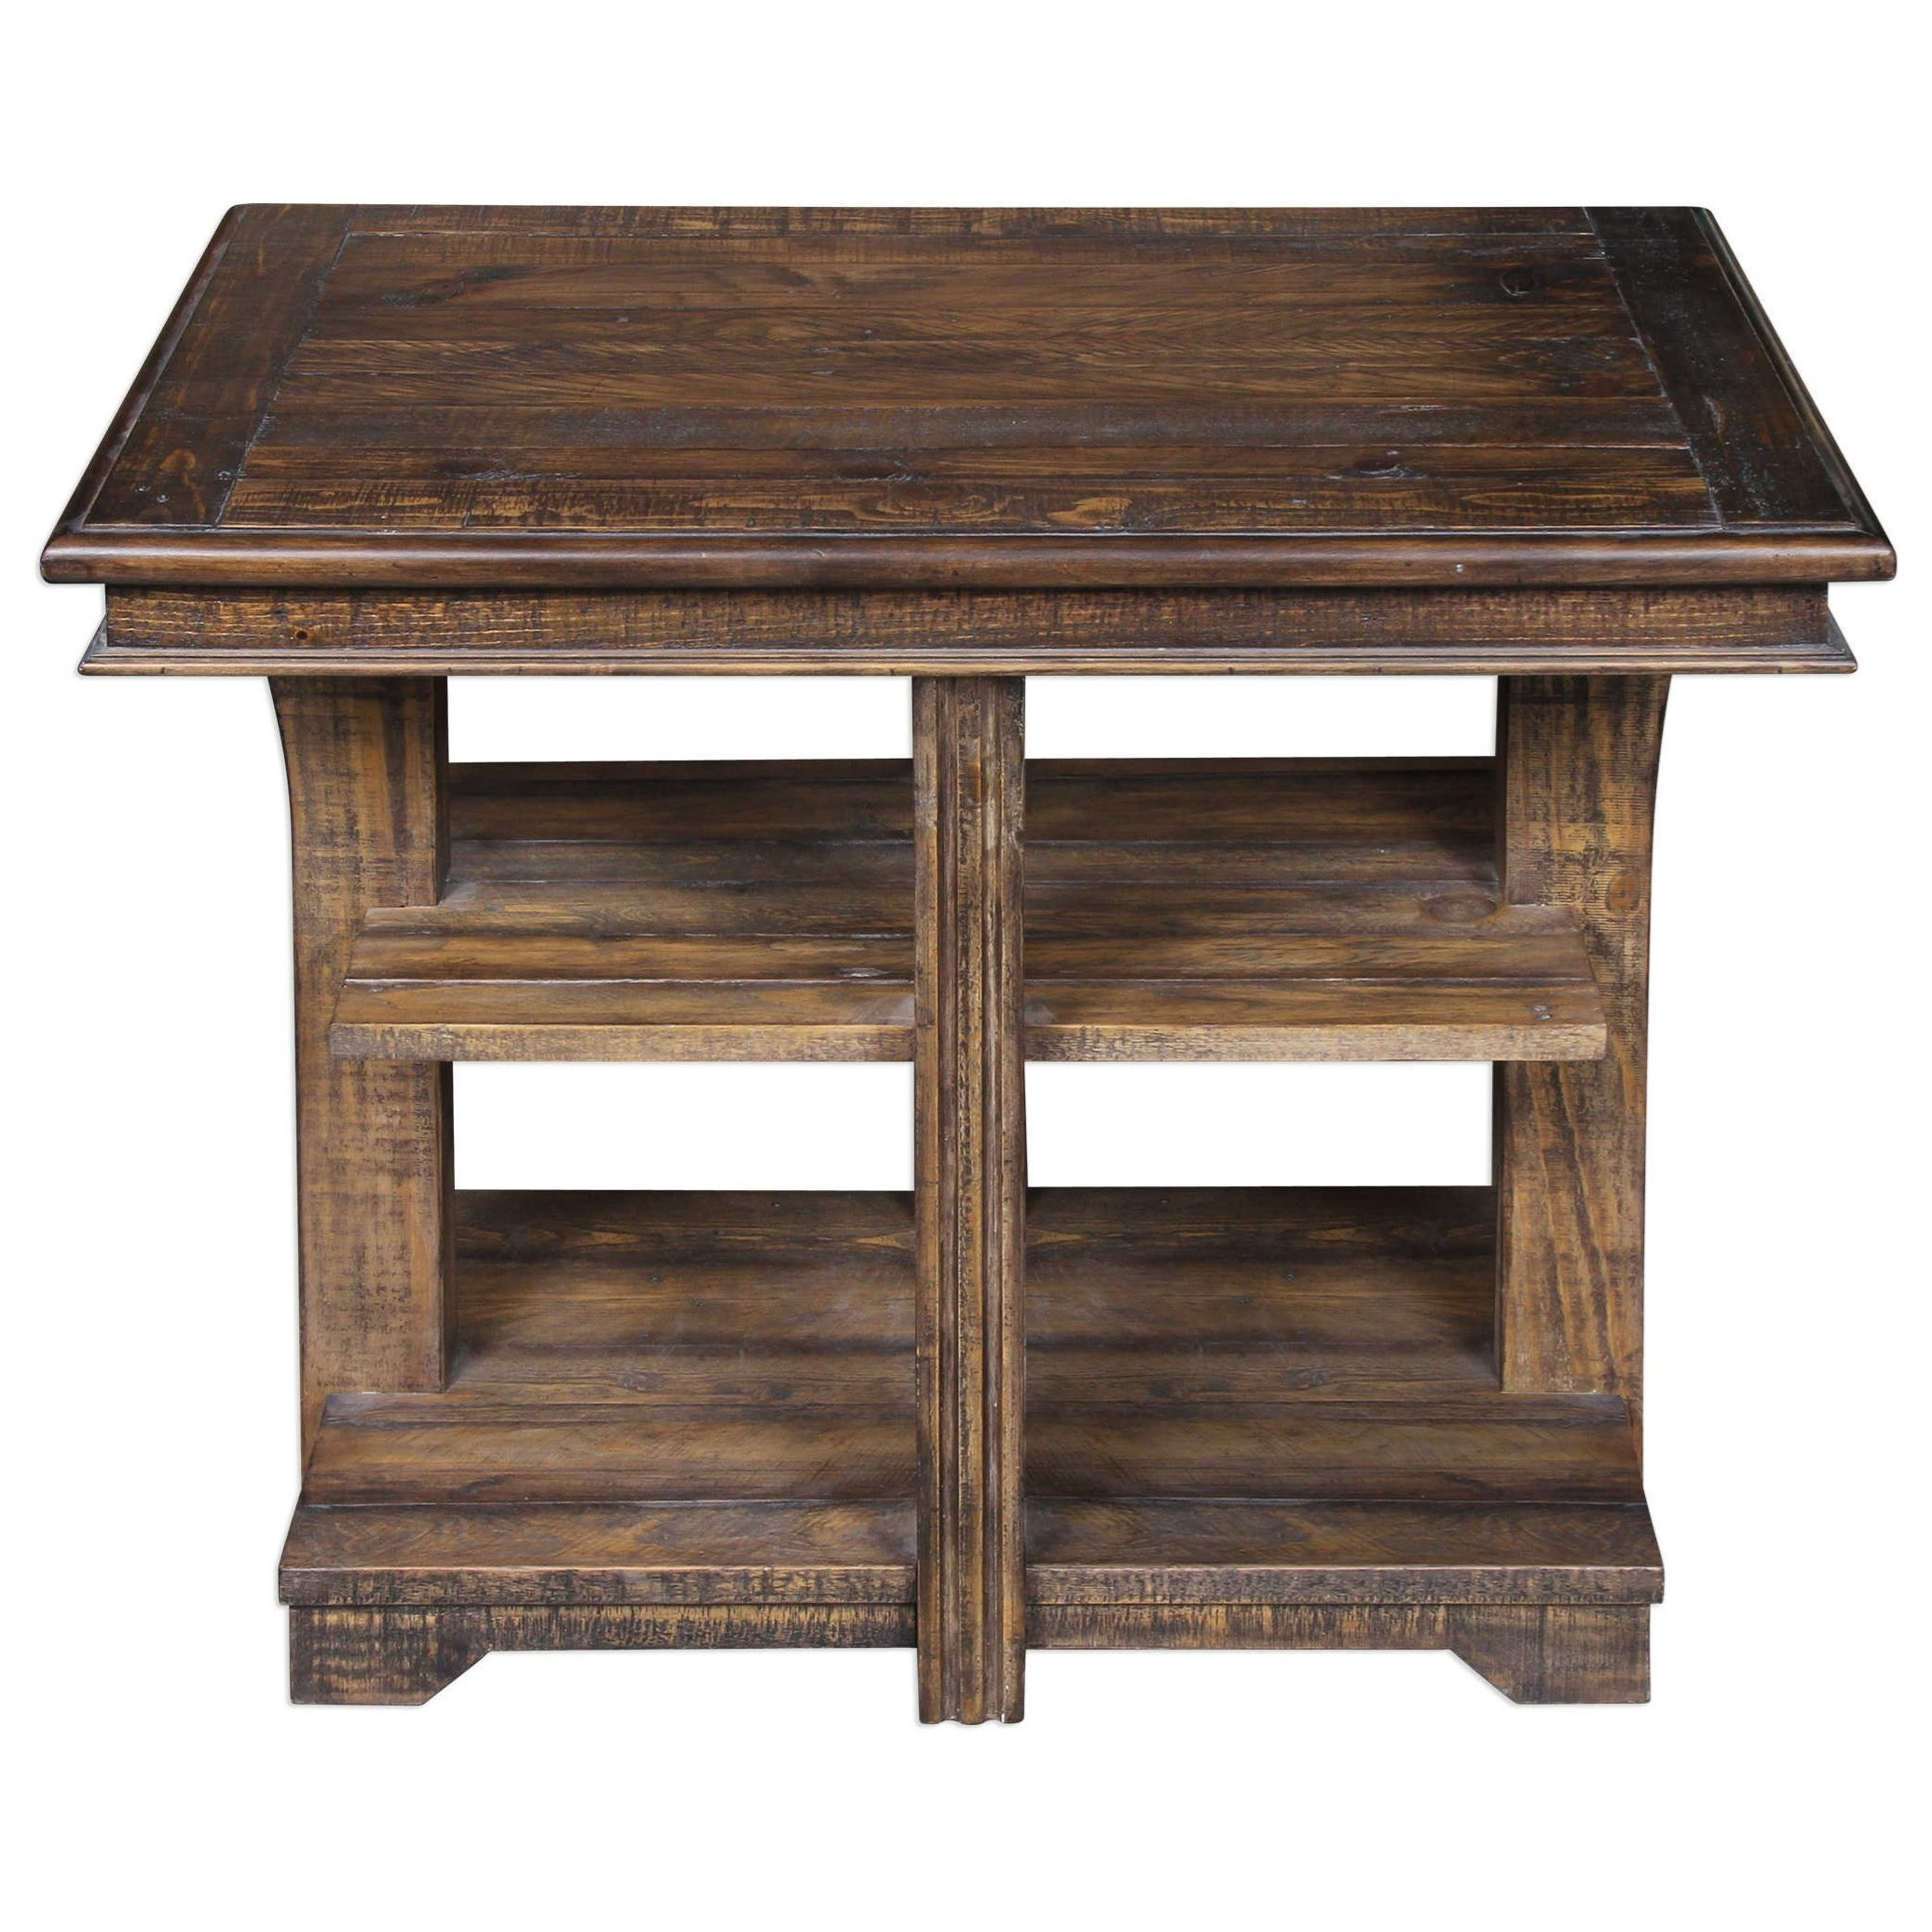 Uttermost Accent Furniture Ramsey Solid Wood End Table - Item Number: 25936